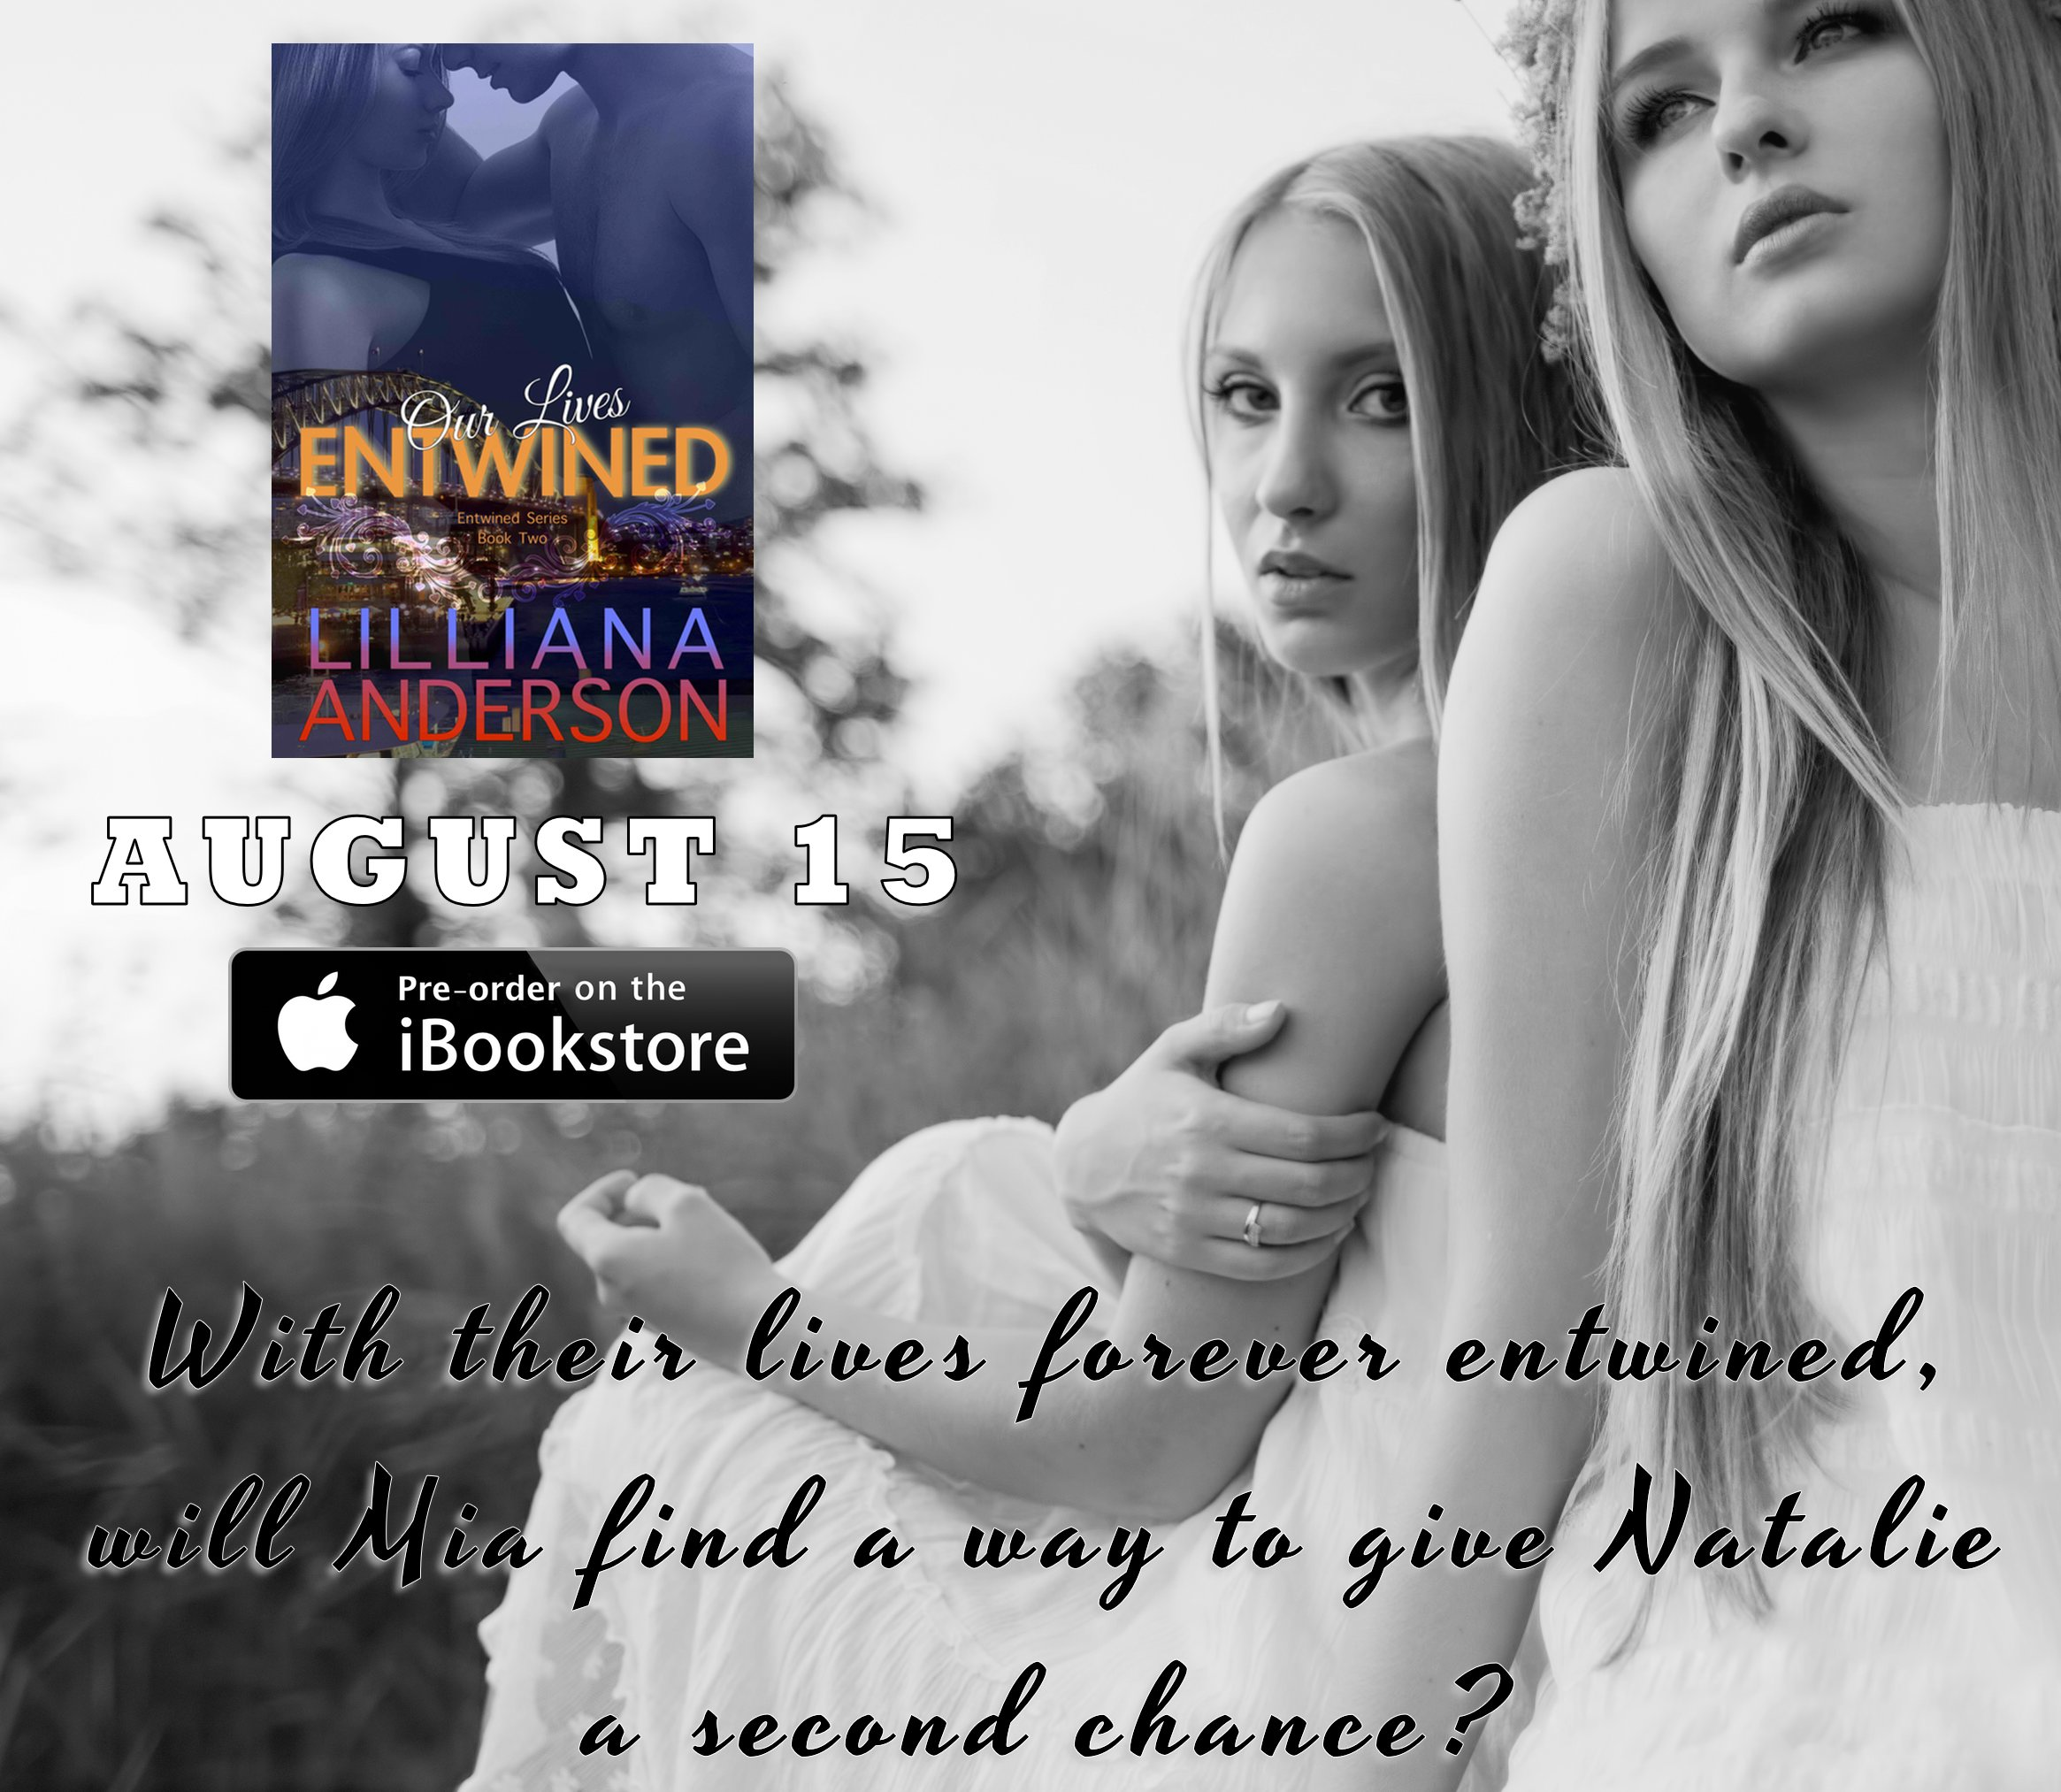 entwined preorder teaser